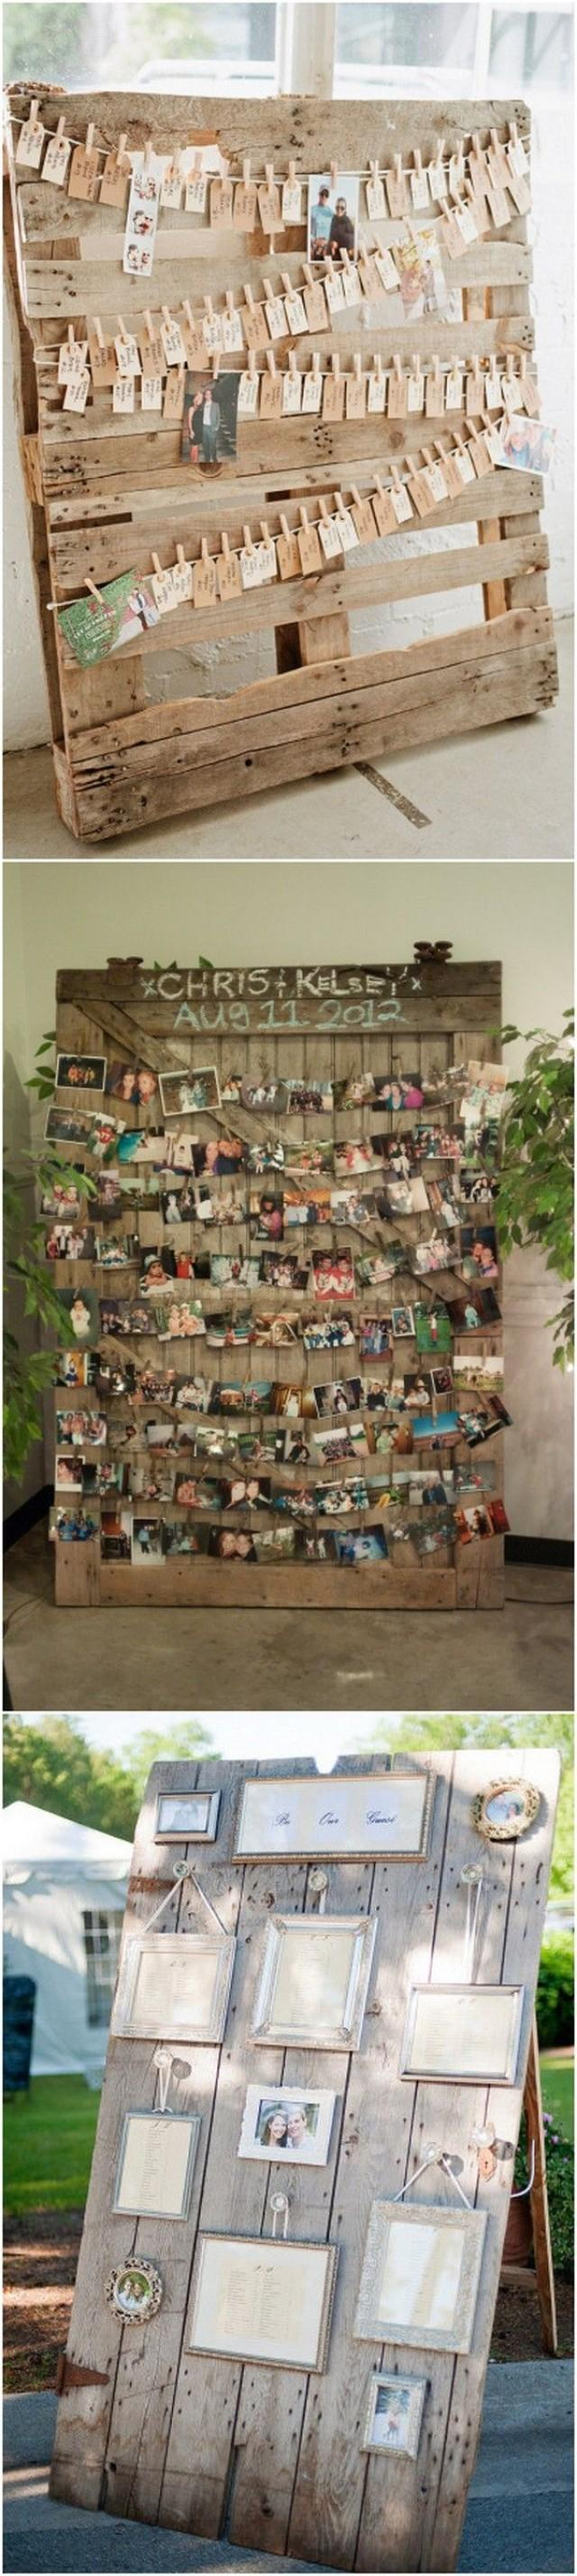 Pallets Wedding Ideas 24 Ideas To Use Wood Pallet For Your Country Wedding 2773926 Weddbook